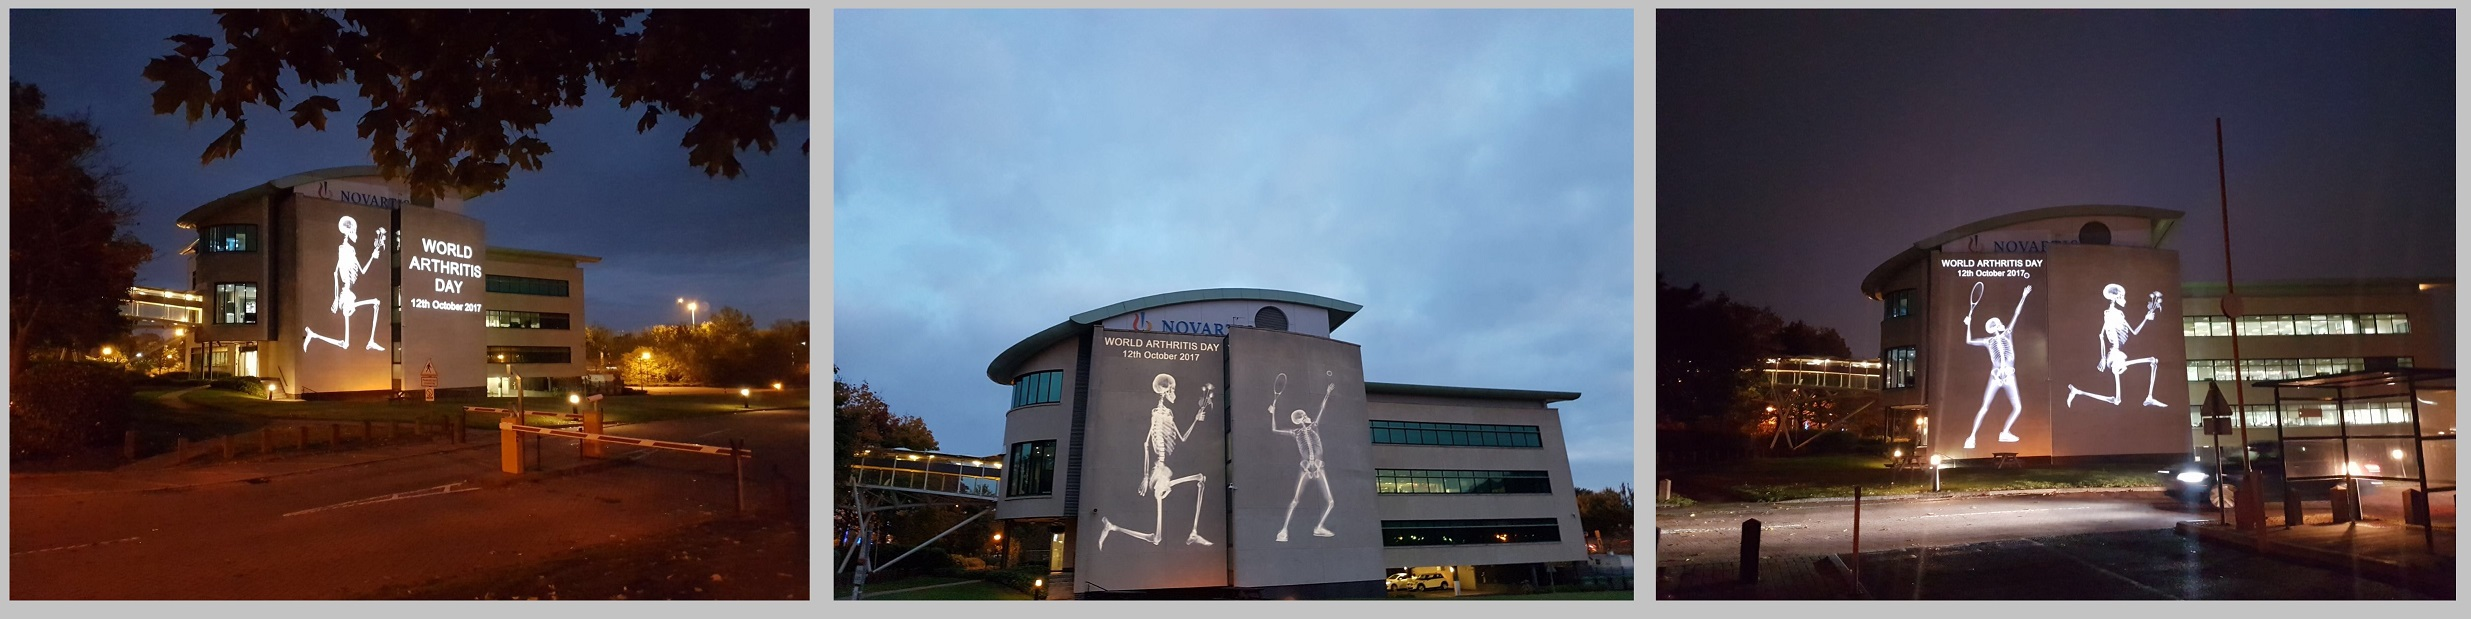 World Arthritis day - Novartis projection